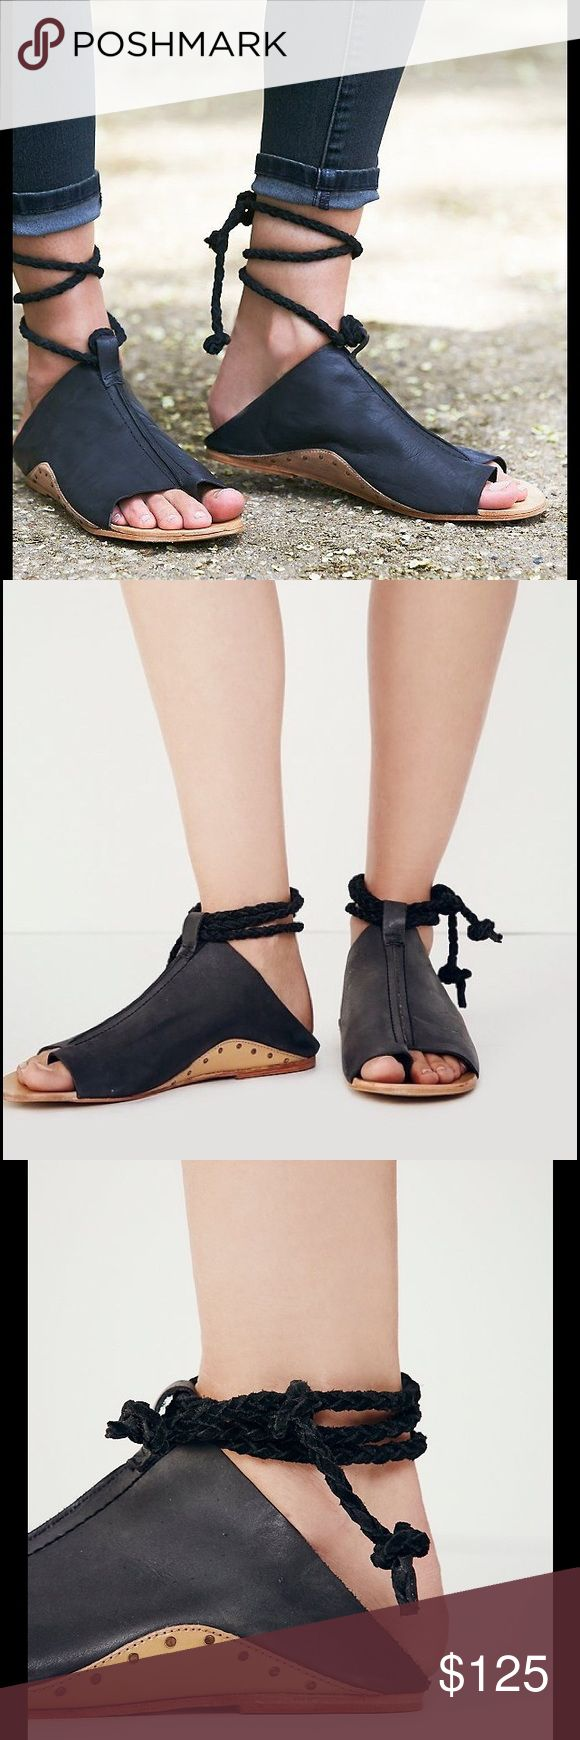 FREE PEOPLE Cherry Valley Leather Sandal, 40 EUR FREE PEOPLE Cherry Valley Leather Sandal. Leather upper, leather sole.  Gray/ Black color with braided suede straps that wrap around Ankle.  EUR size 40; fits US 8.5 to 9.  EUC.  Size 40 is US size 9, but these run small. Free People Shoes Sandals